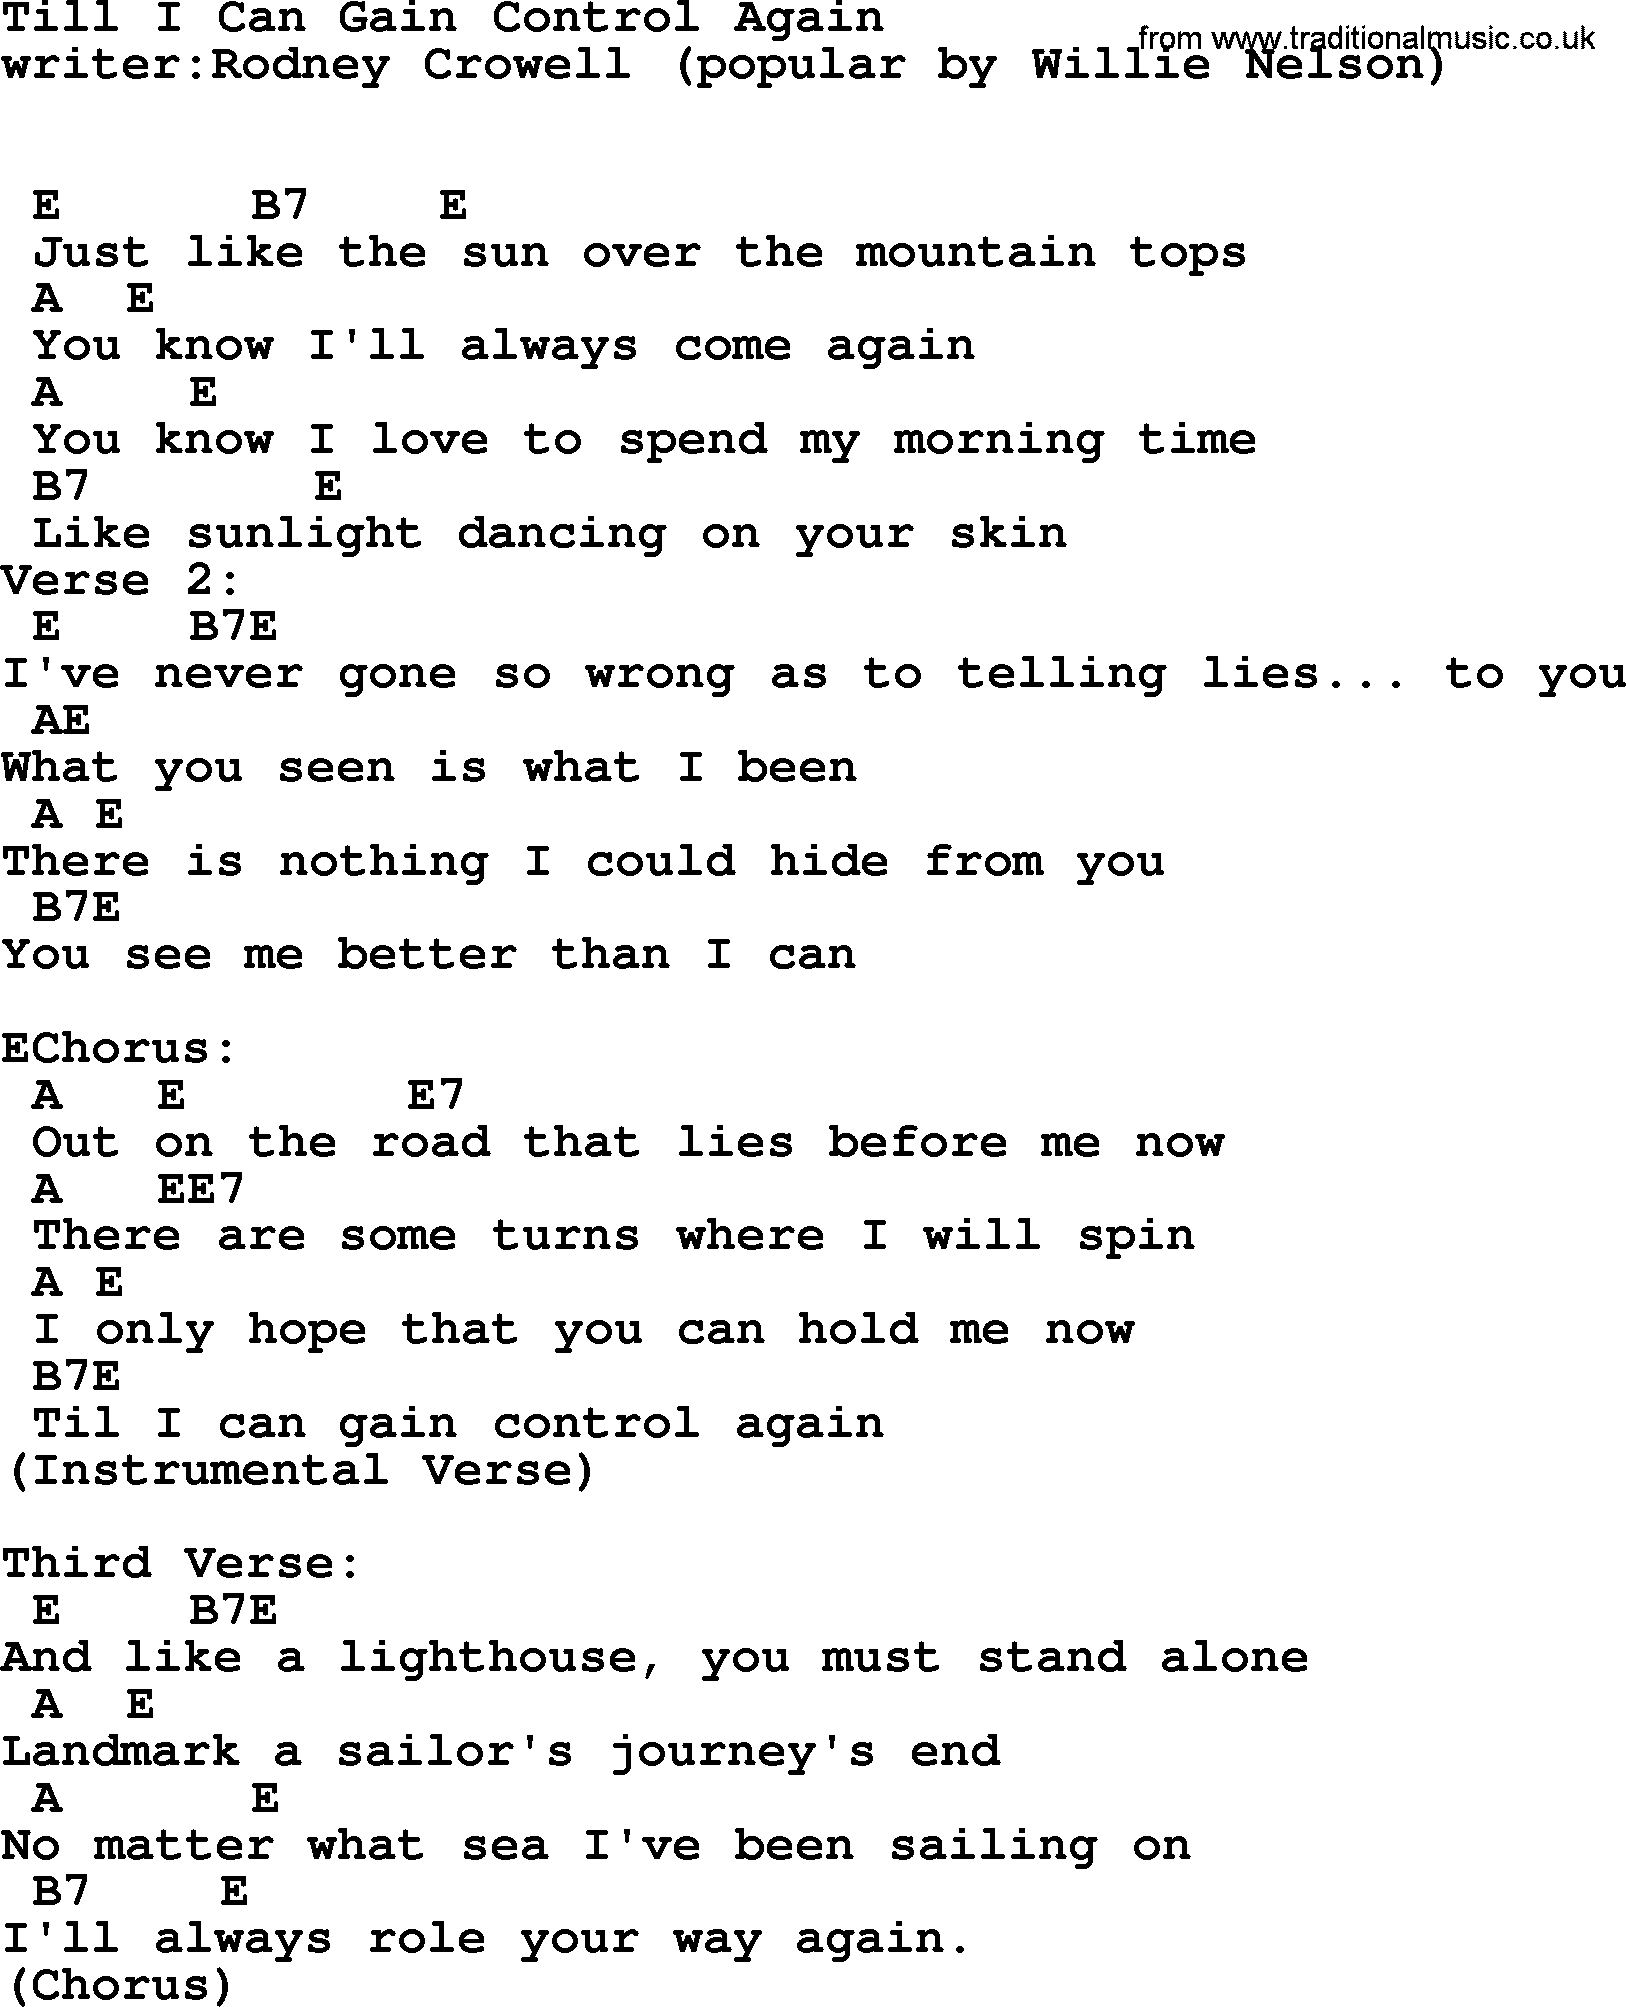 Willie Nelson Song Till I Can Gain Control Again Lyrics And Chords